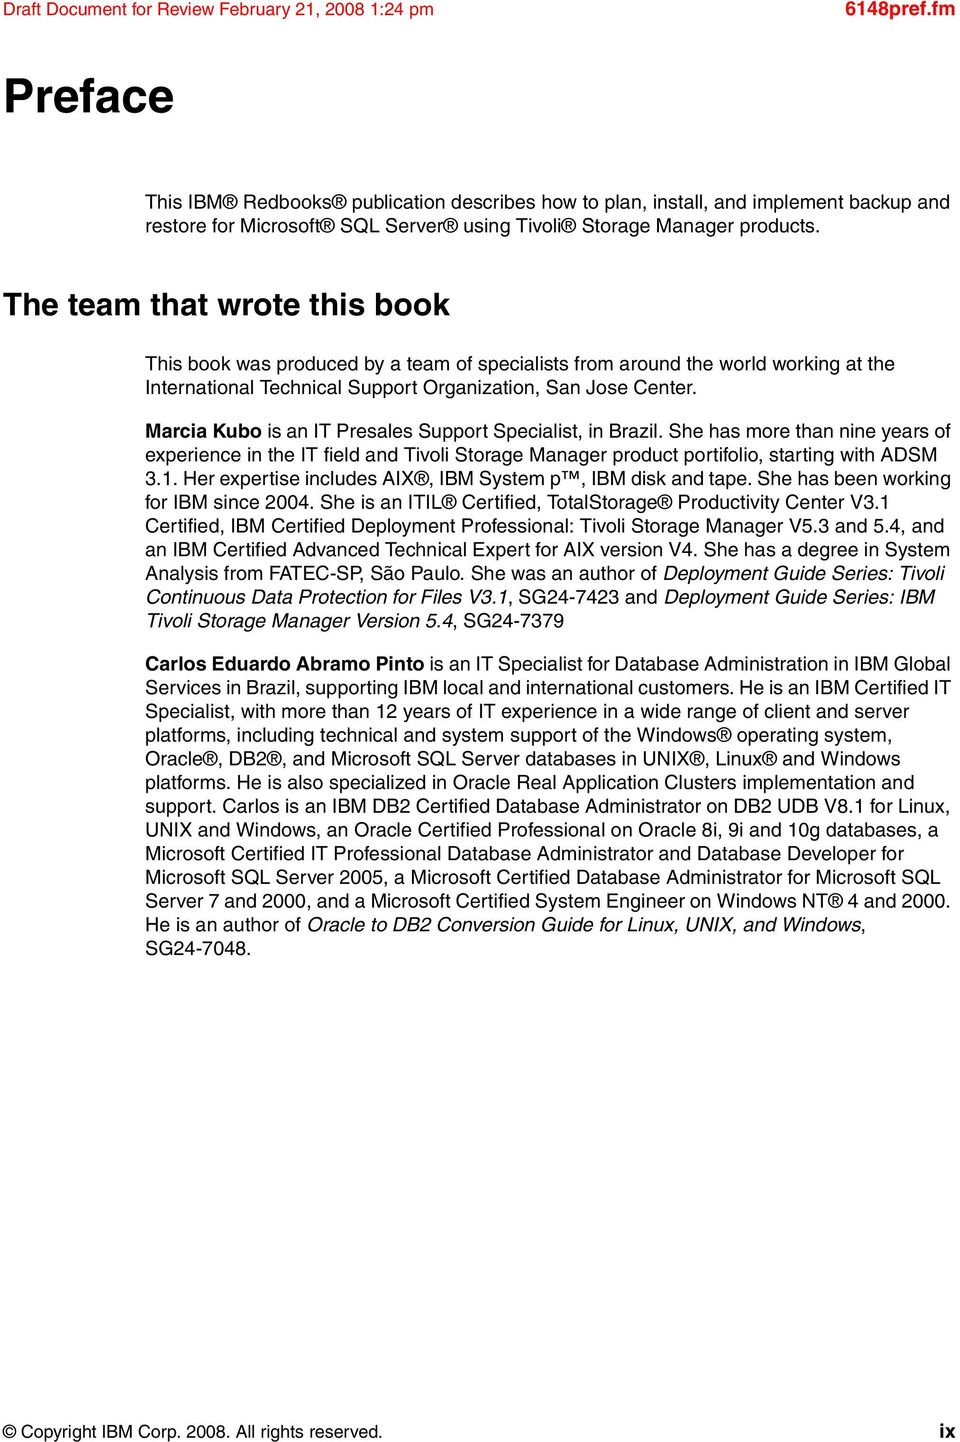 The team that wrote this book This book was produced by a team of specialists from around the world working at the International Technical Support Organization, San Jose Center.